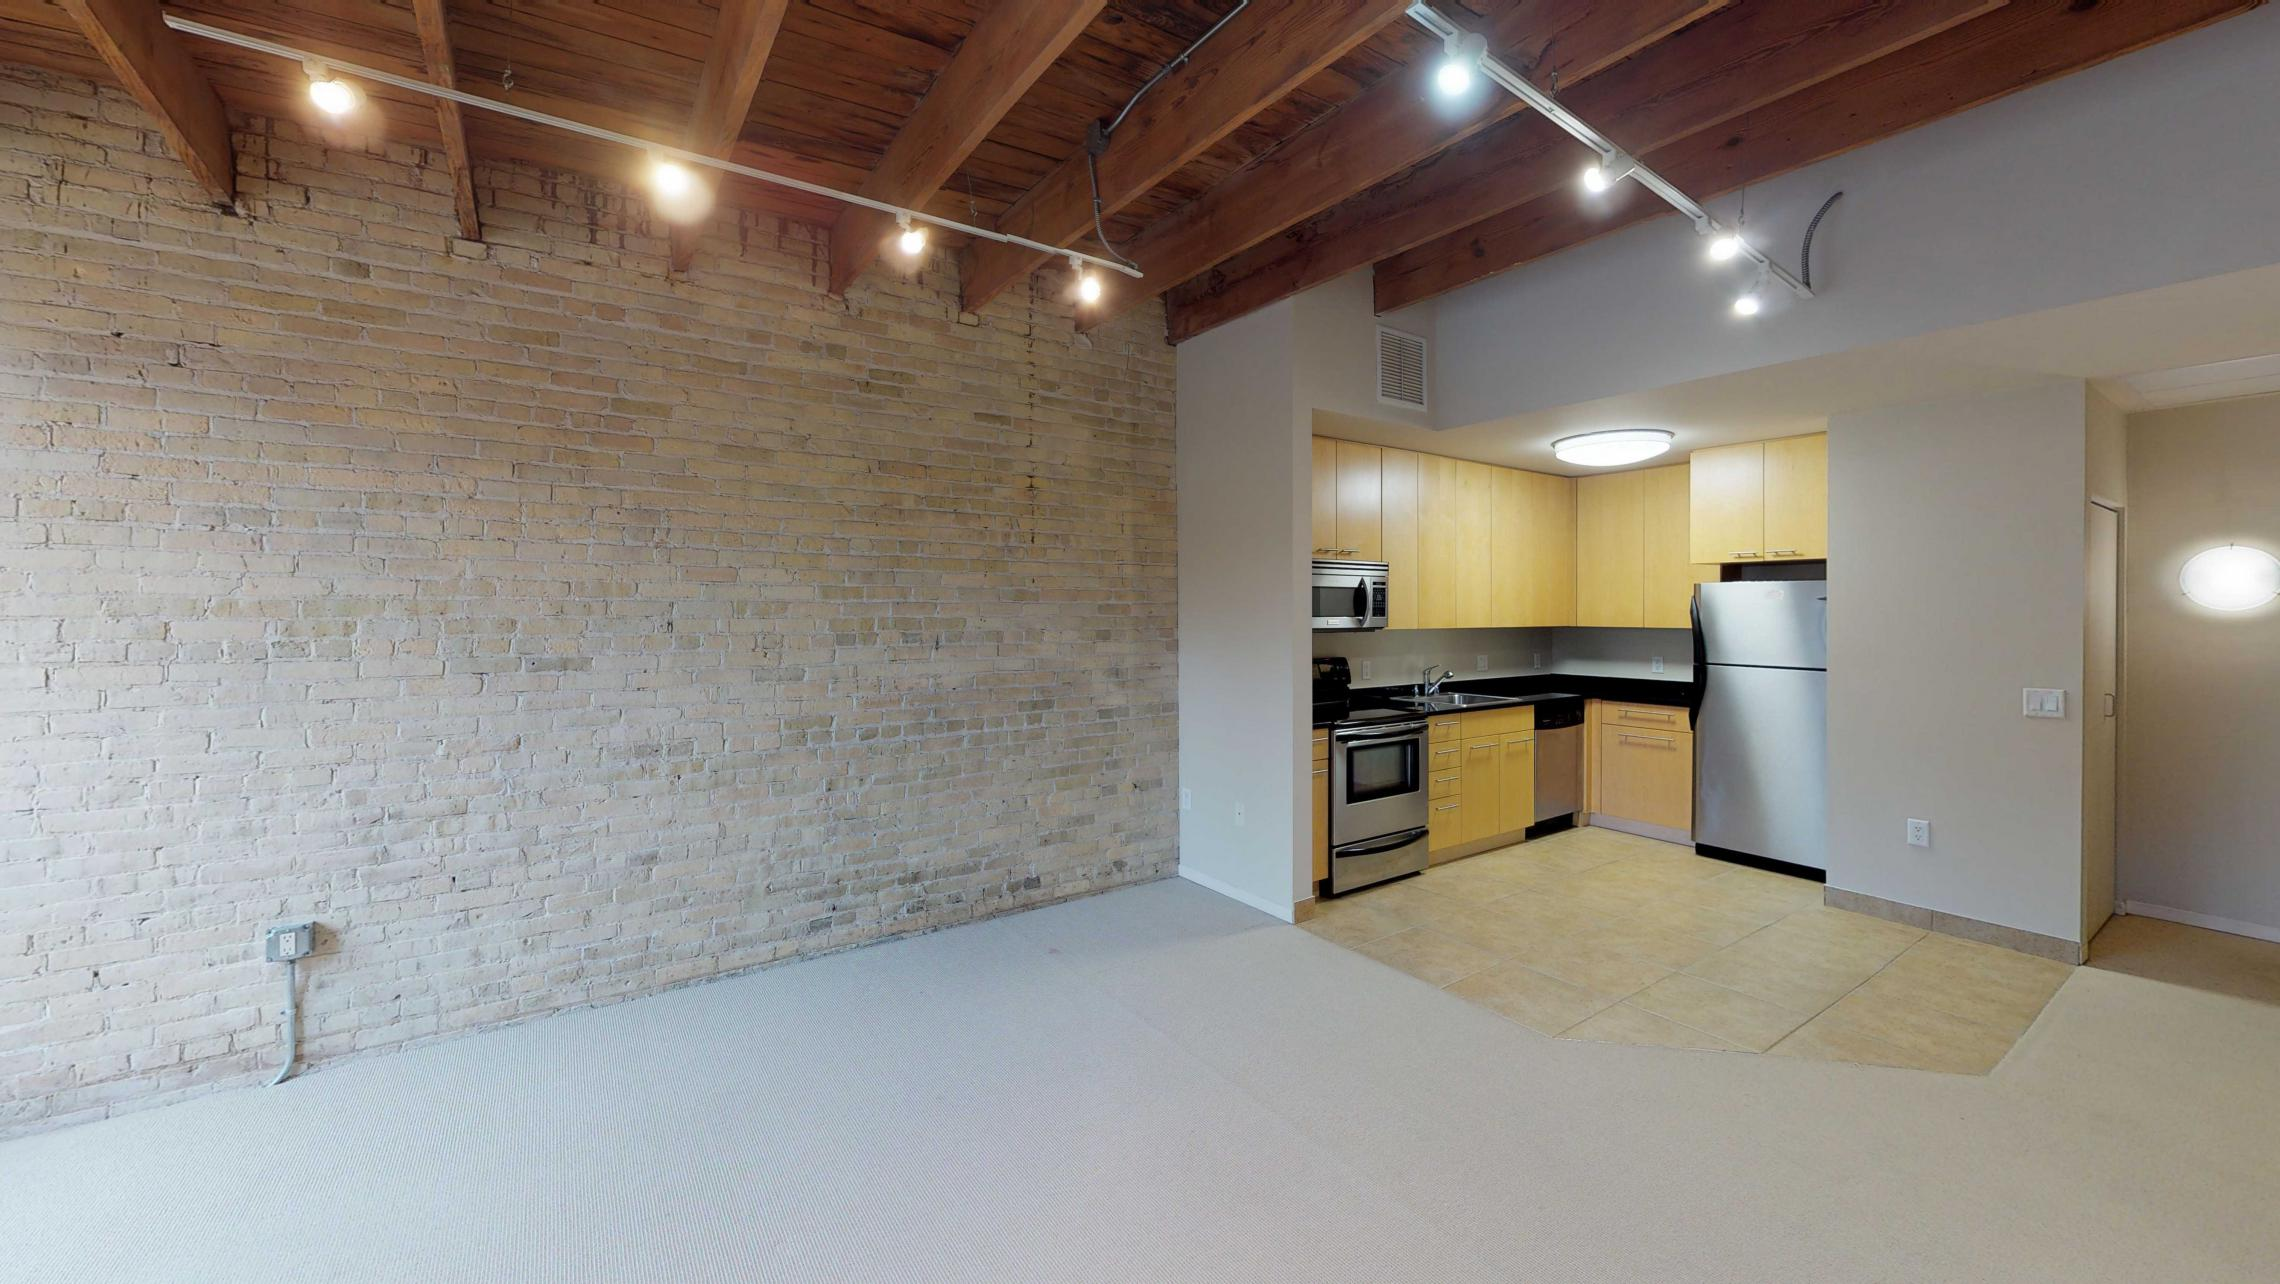 Tobacco-Lofts-Apartment-W220-Studio-Historic-Downtown-Madison-Yards-Kitchen-Exposures-Brick-Living-Room.jpg